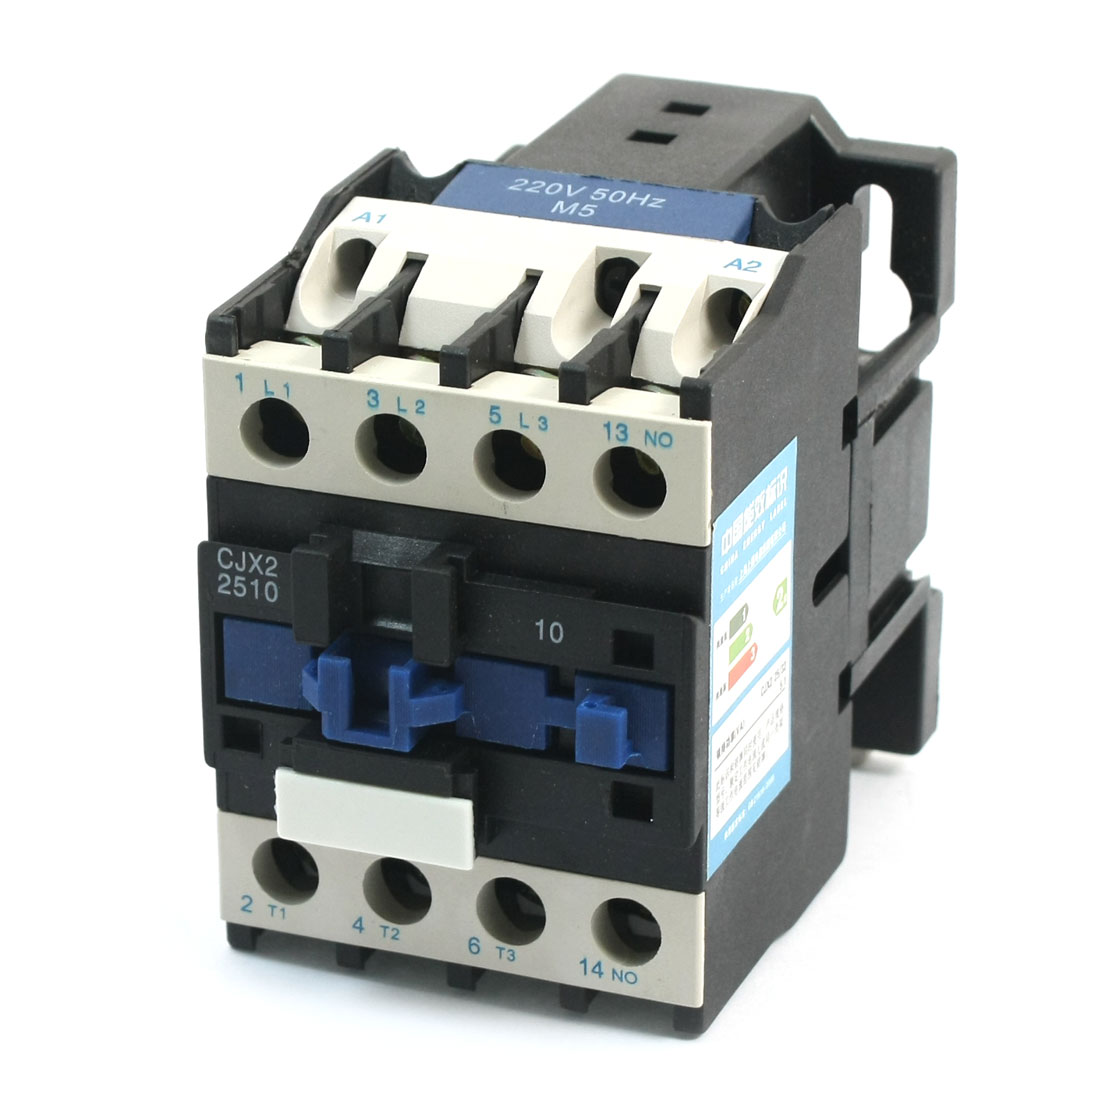 CJX2-2510 35mm DIN Rail Mount 3 Phase AC Contactor 220V Coil 40A